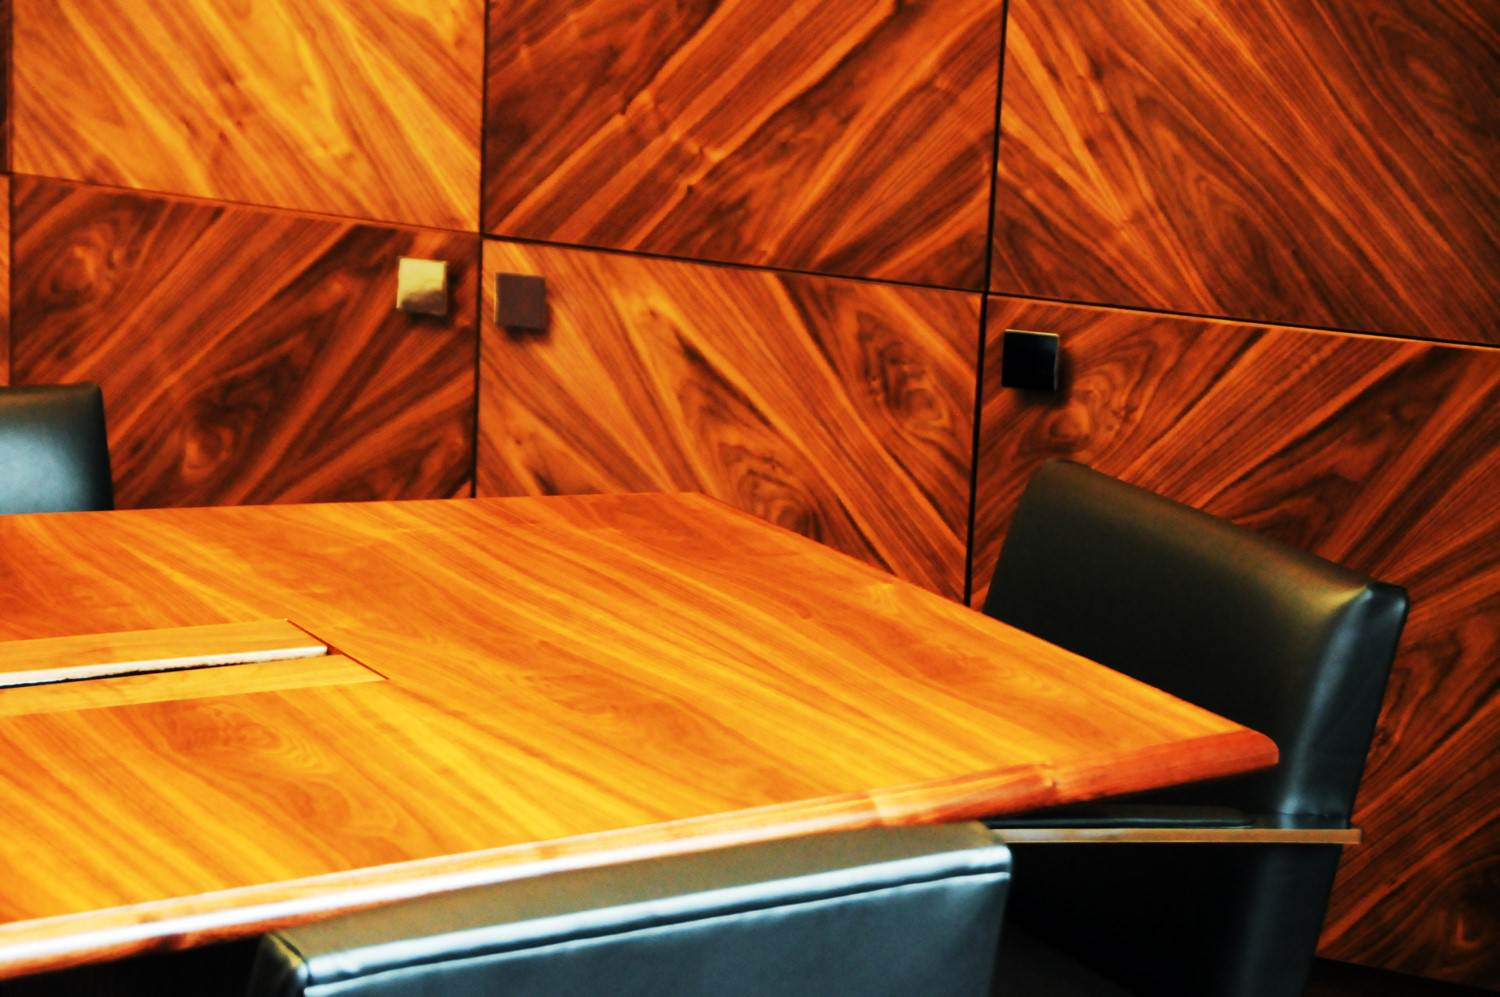 Bespoke Boardroom Table Made in Scotland